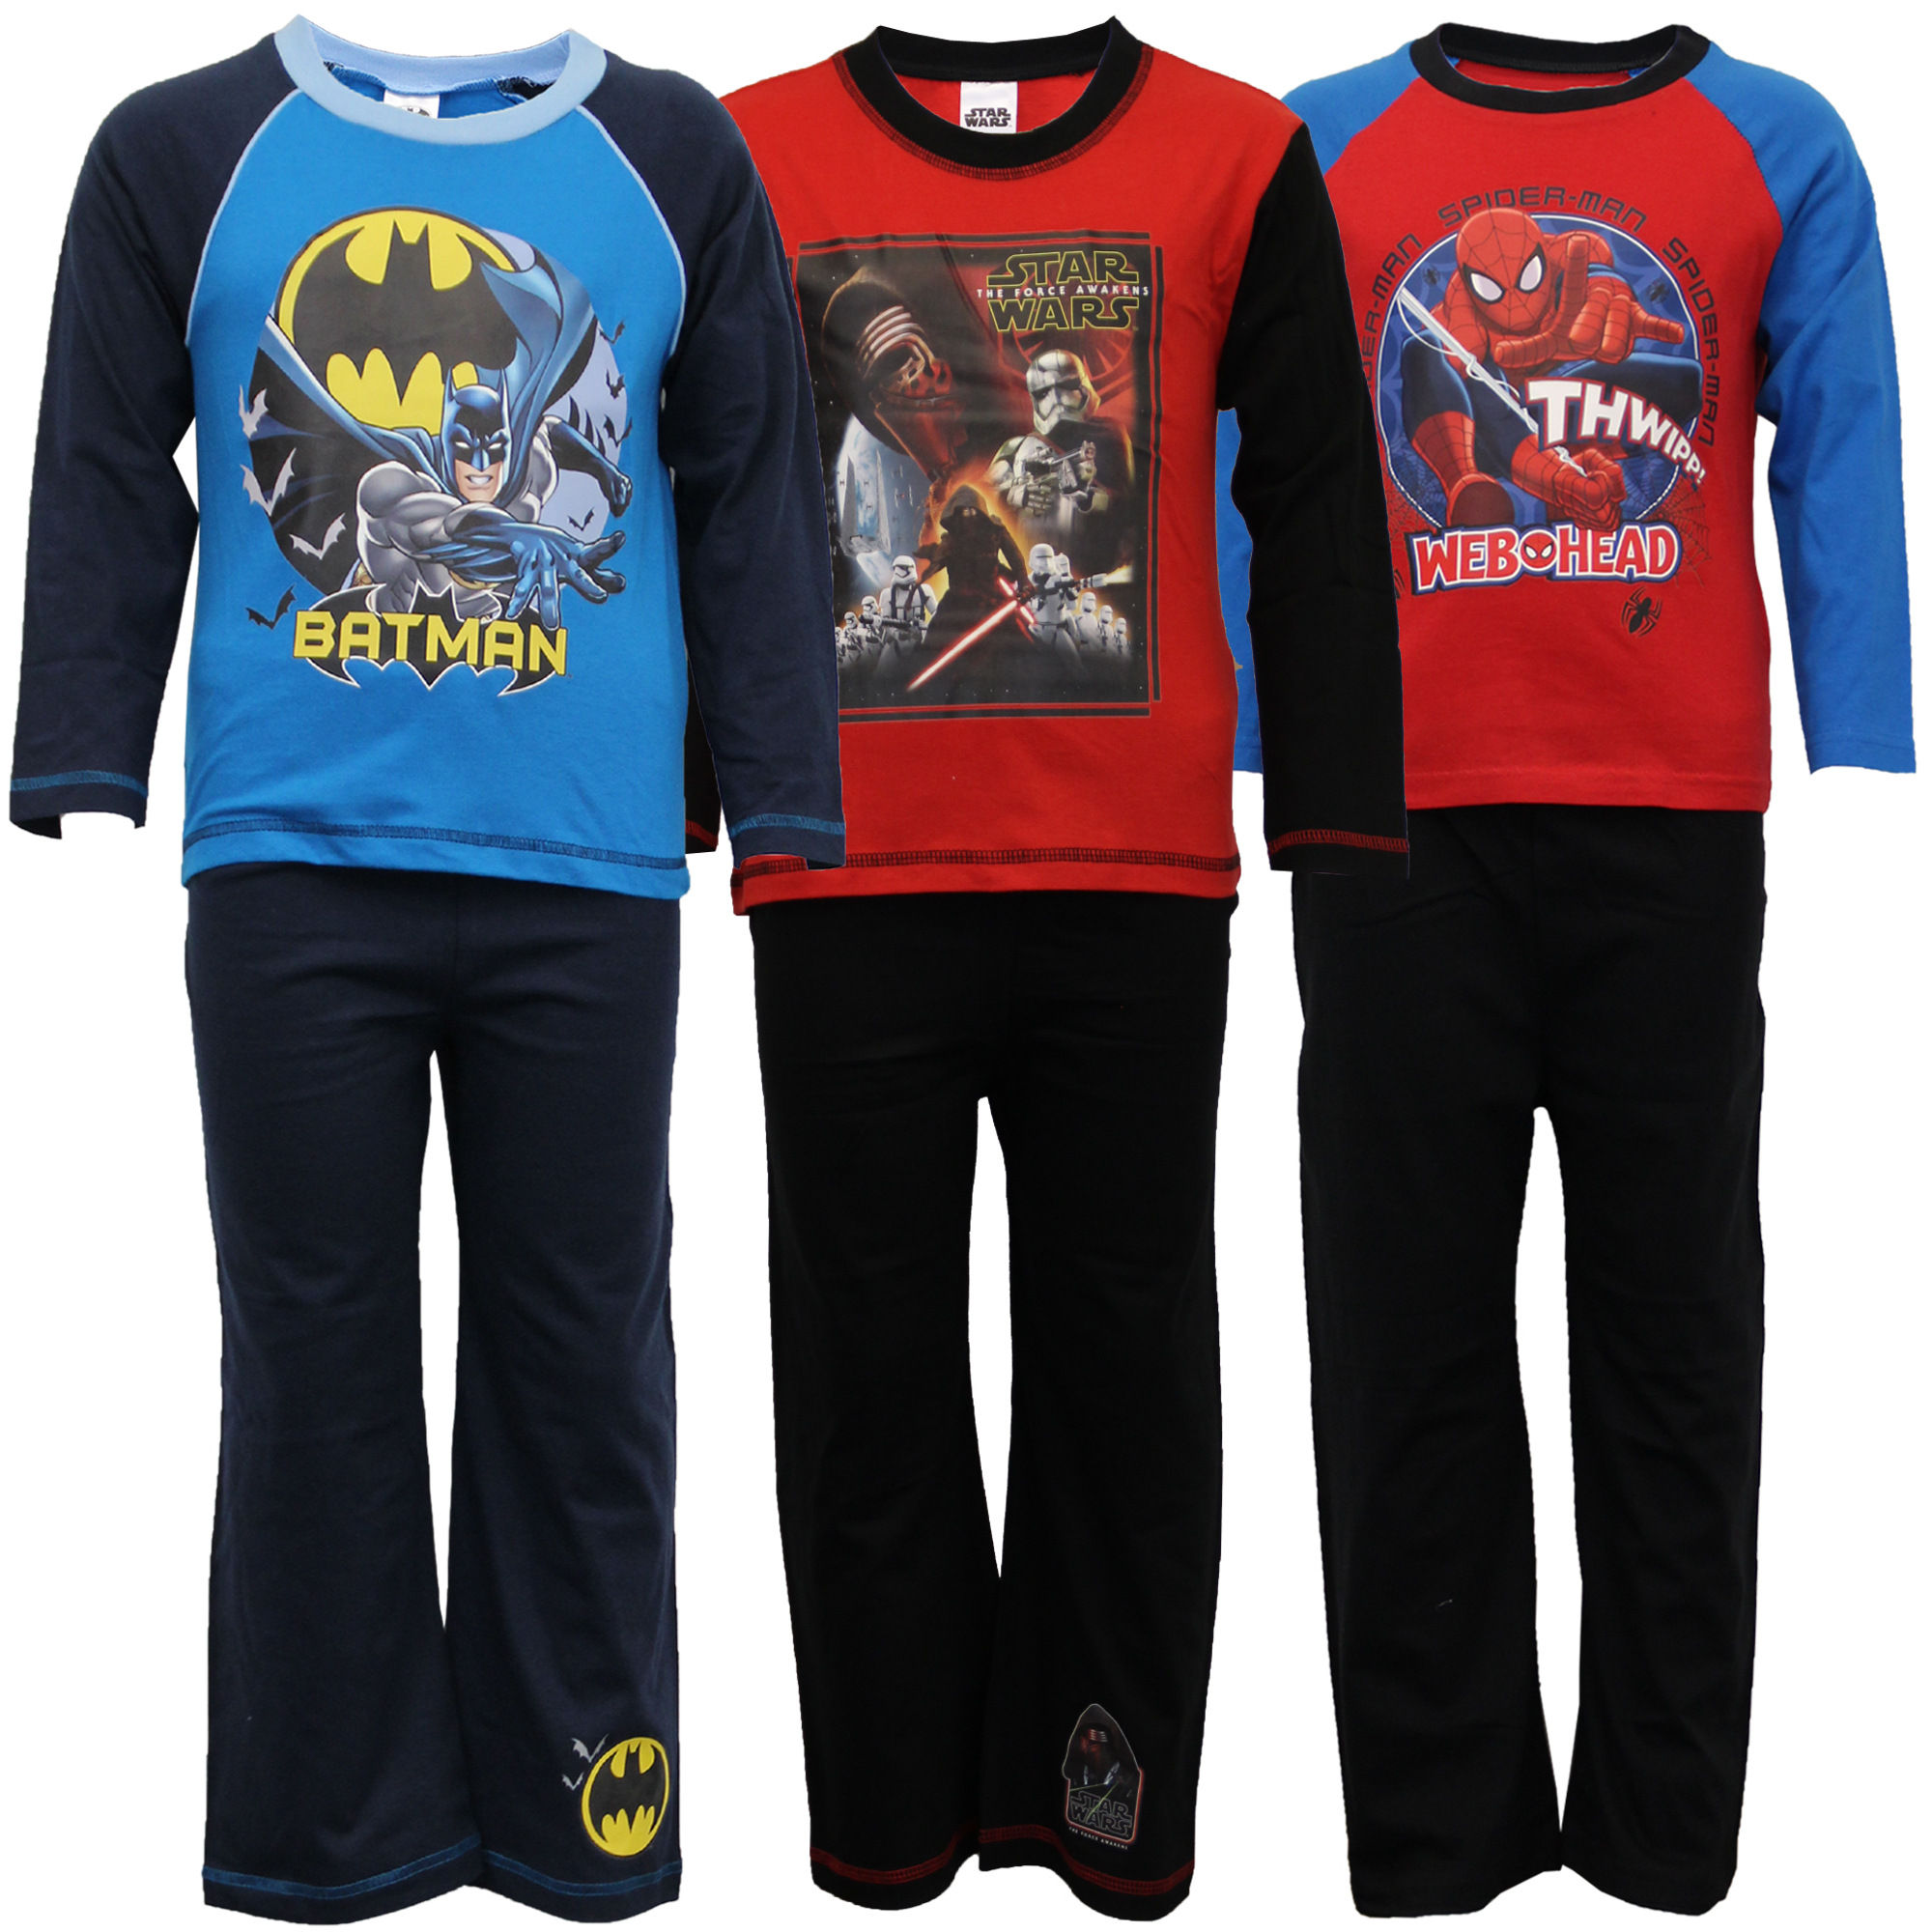 Pijama-nino-infantil-SET-BATMAN-SPIDERMAN-Top-Estampado-Pantalones-de-Marvel